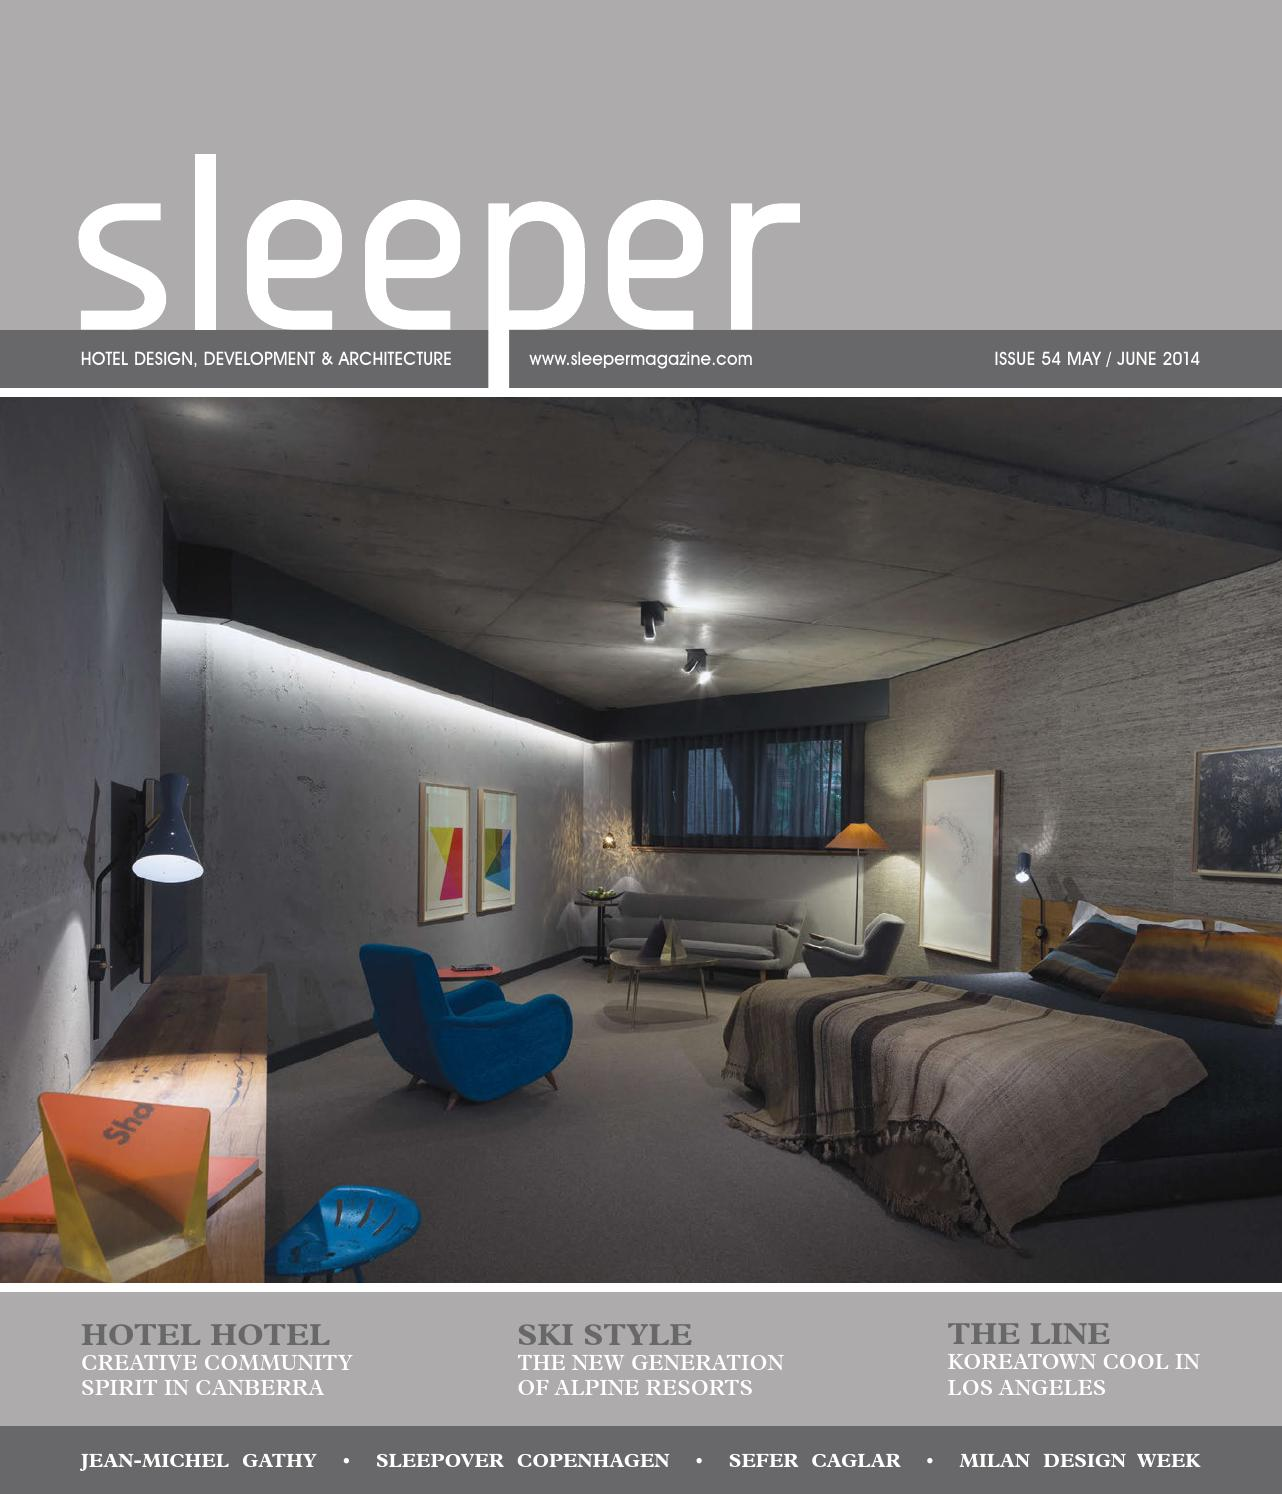 Sleeper May June 2014 - Issue 54 by Mondiale Publishing - issuu fcdcc663f6f8